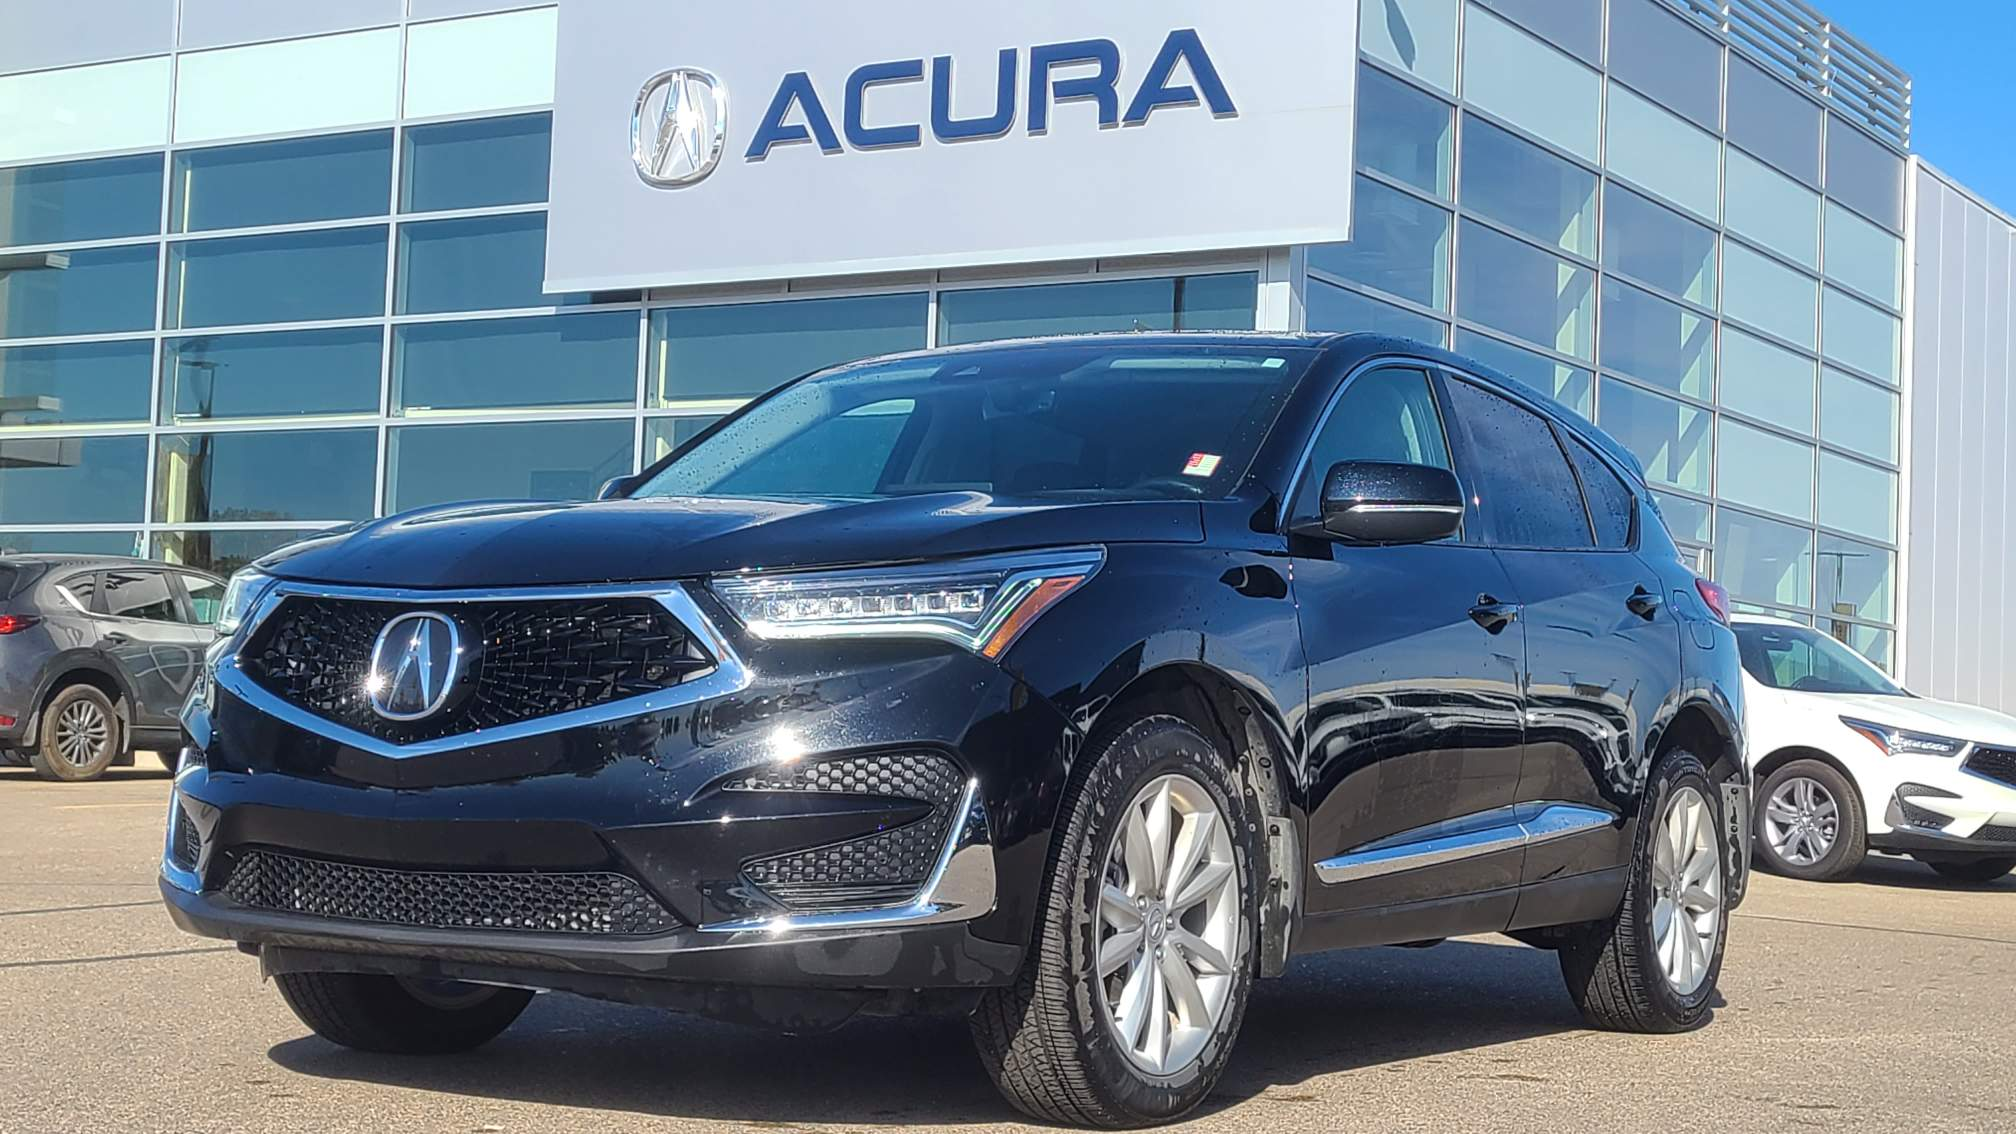 used 2021 Acura RDX car, priced at $49,611